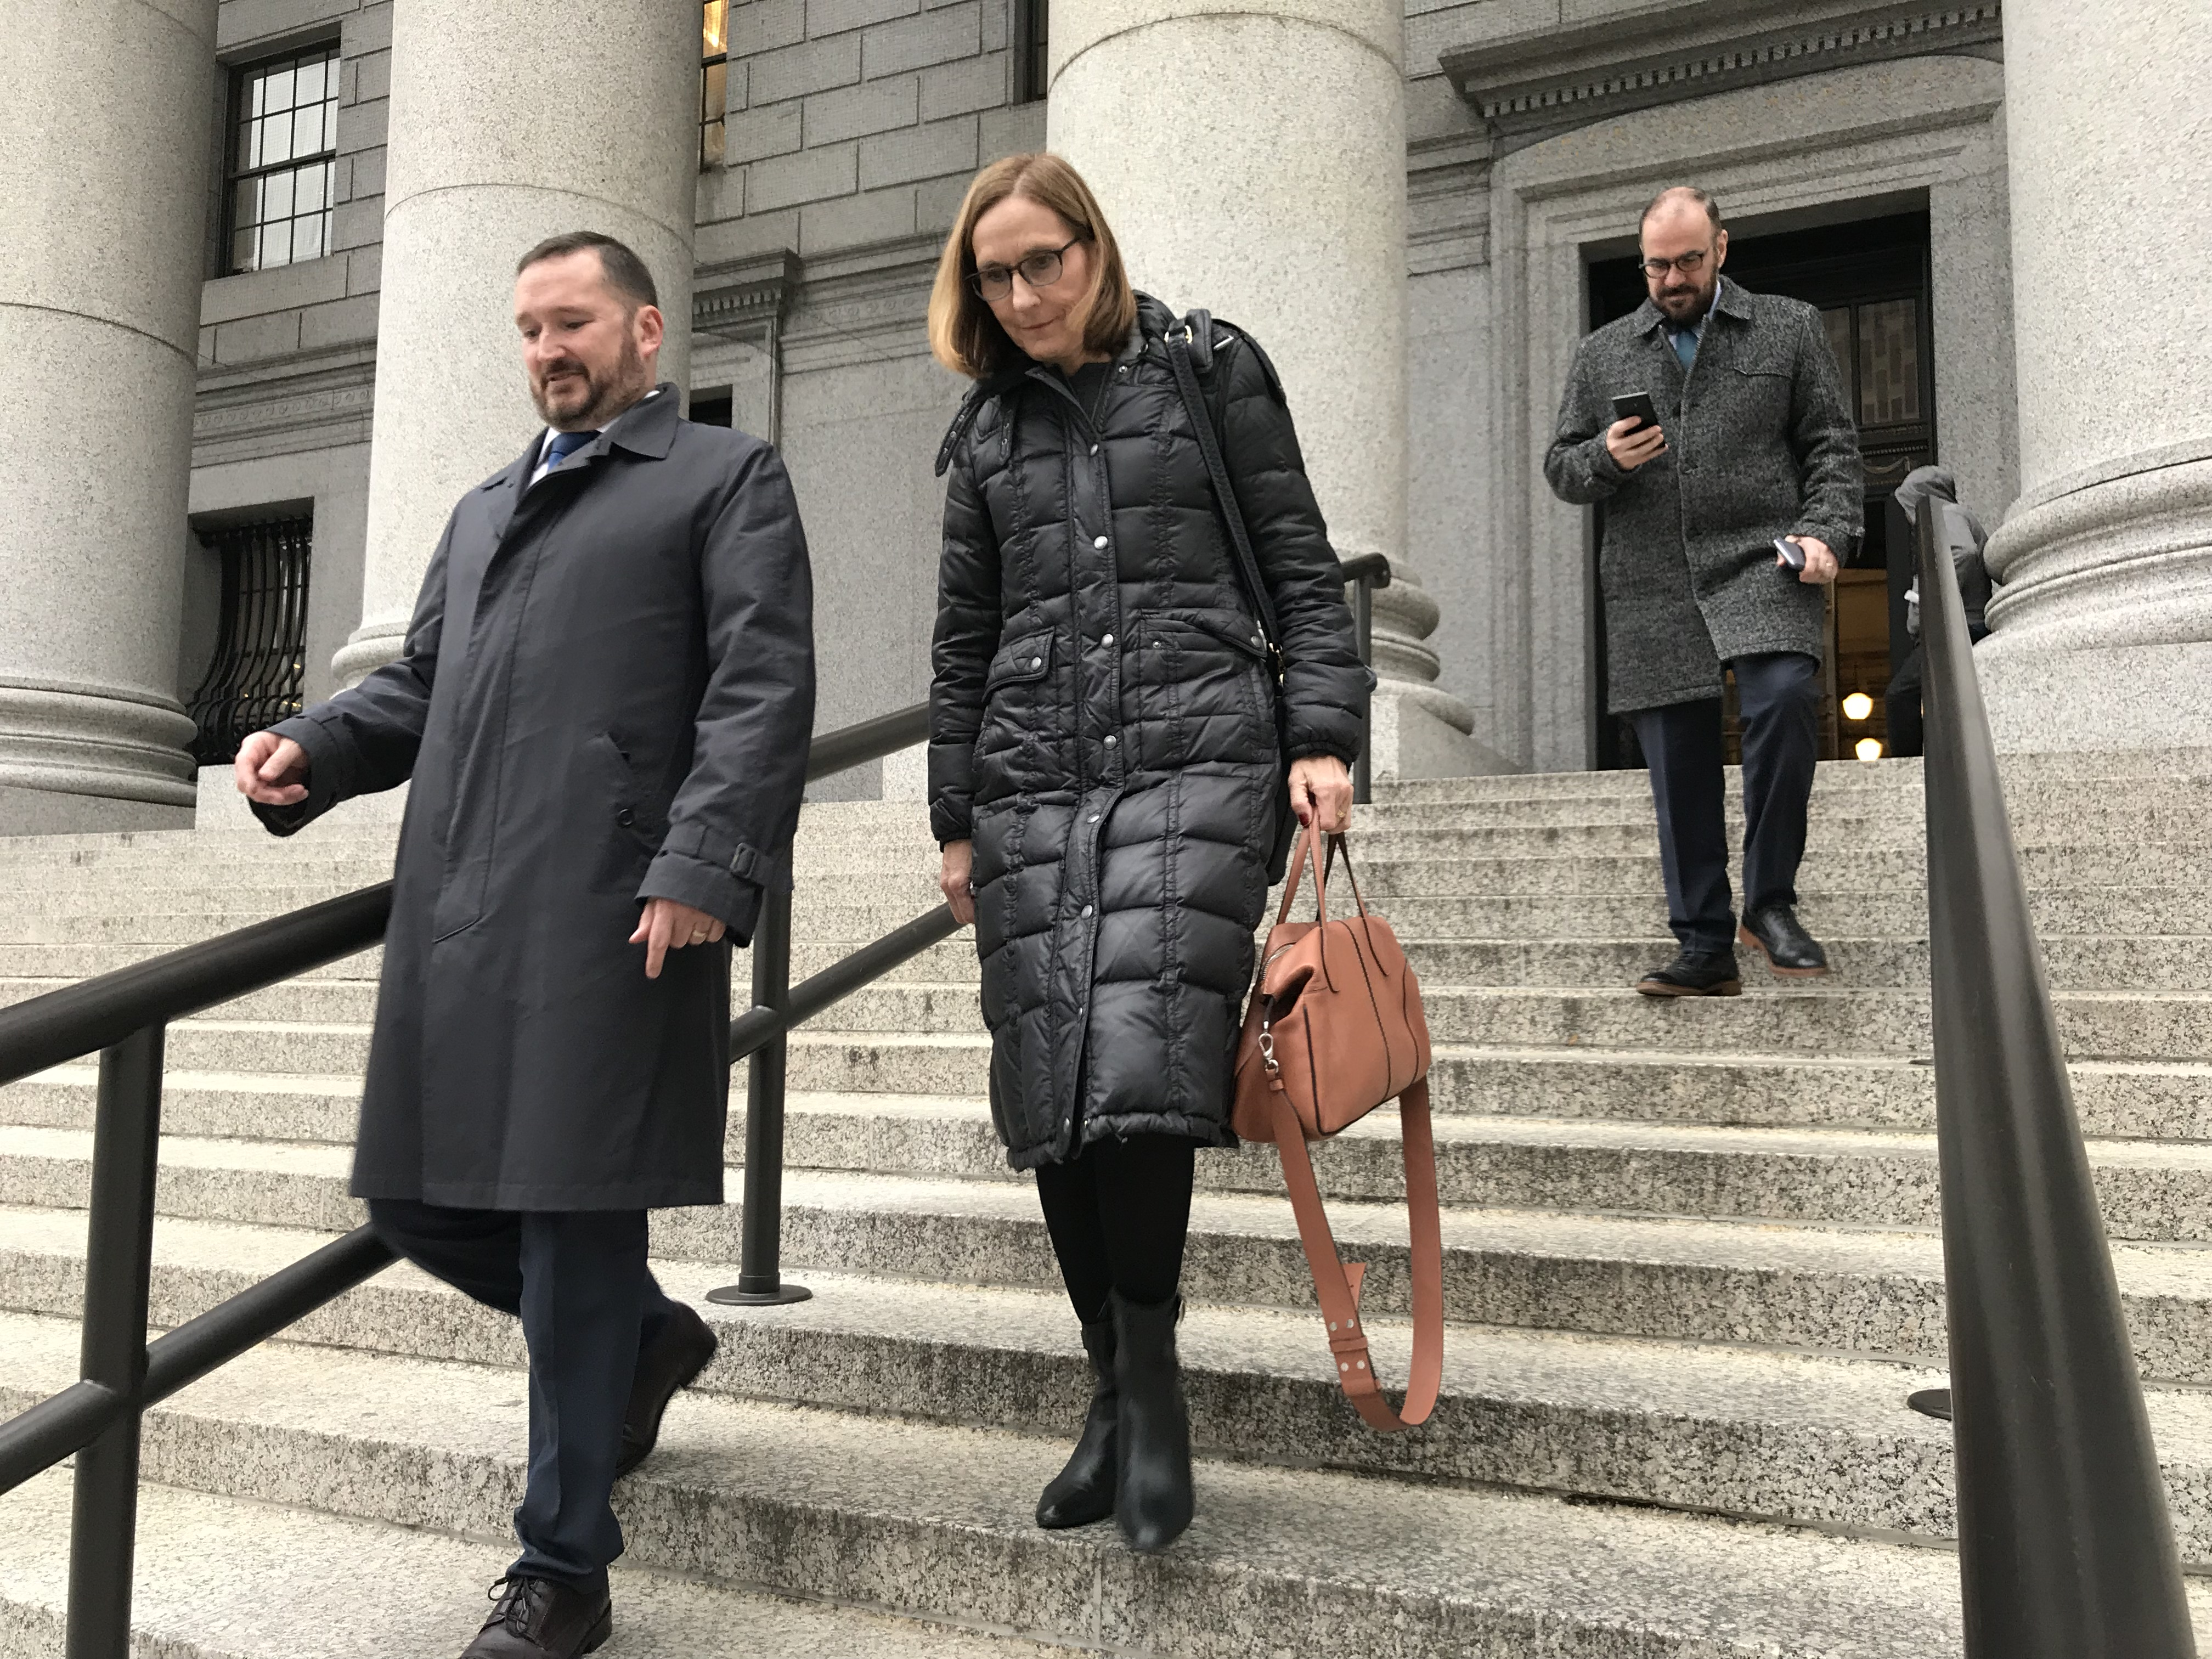 Bookkeeper Gets Two Year Sentence For Scheme That Destroyed Donadio Olson